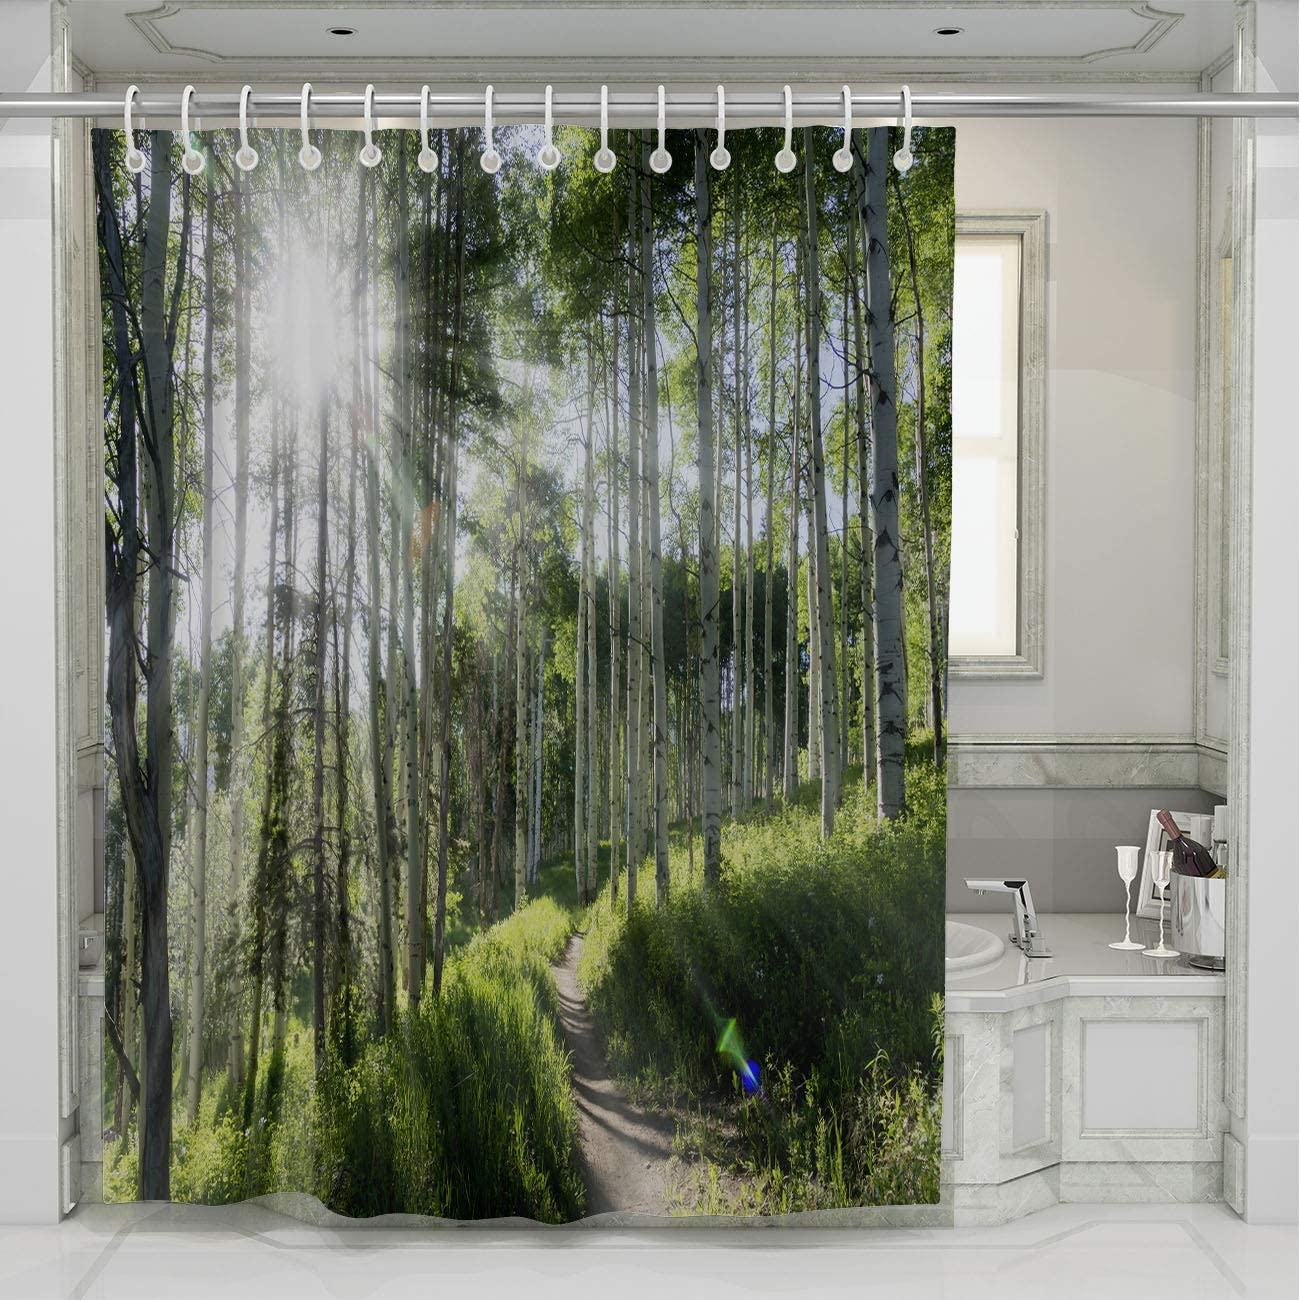 BEISISS Mountain Shower Curtain,Beautiful Mountain Hiking Trail Through Aspen Trees of Vail Colorado,Photo Art Fabric Bathroom Decor Set with Hooks,78Wx72L